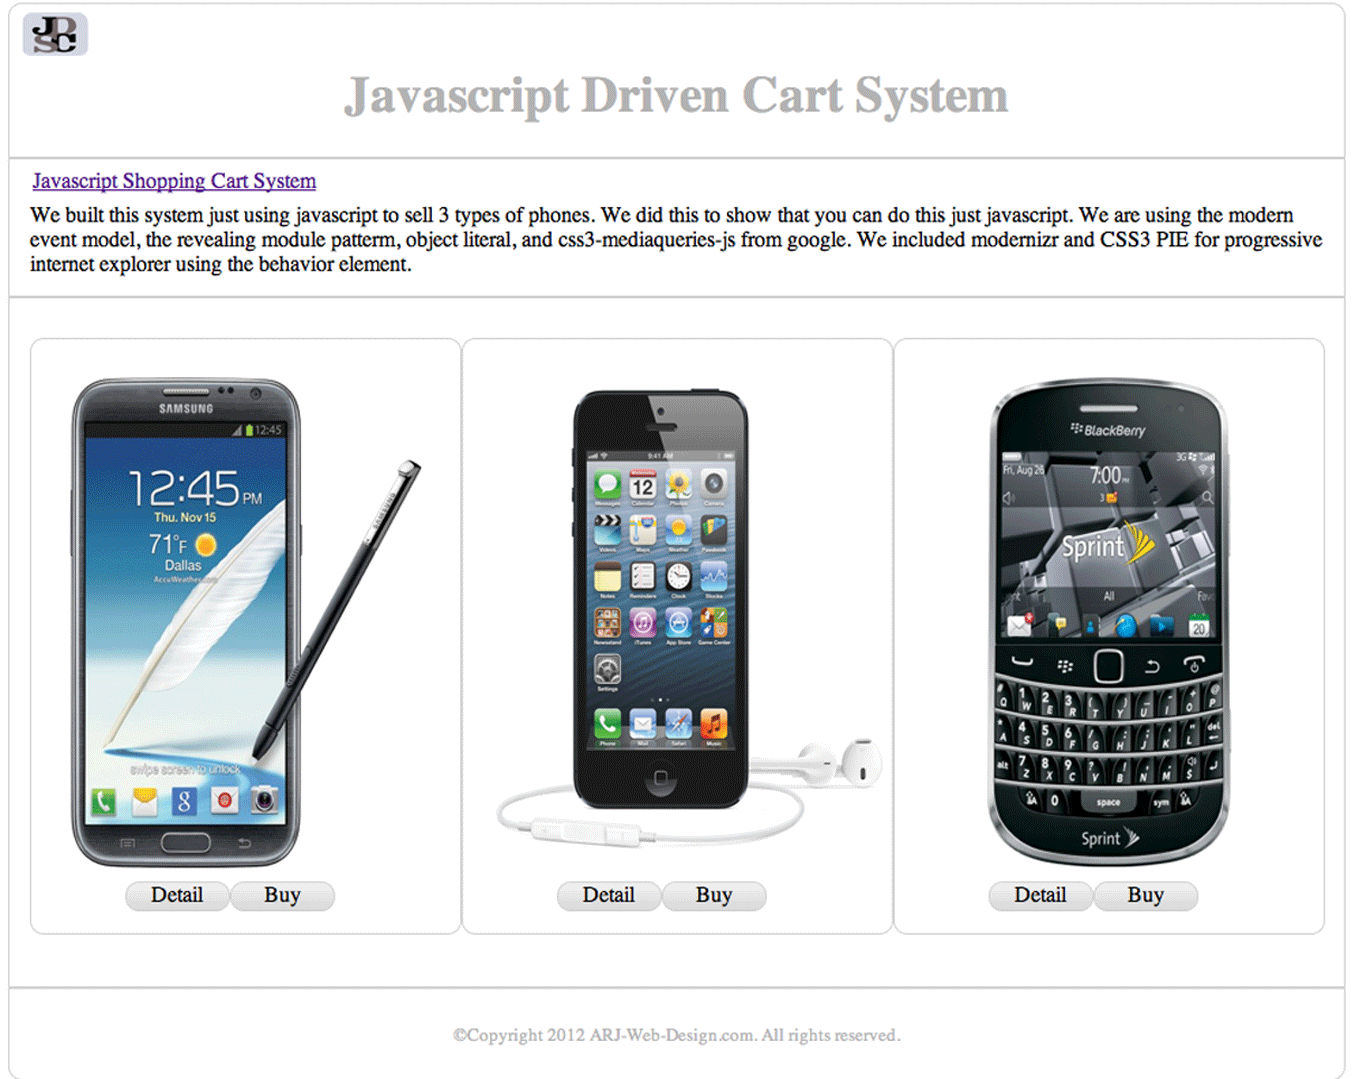 An image of a Template Javascript Cart Project image 1